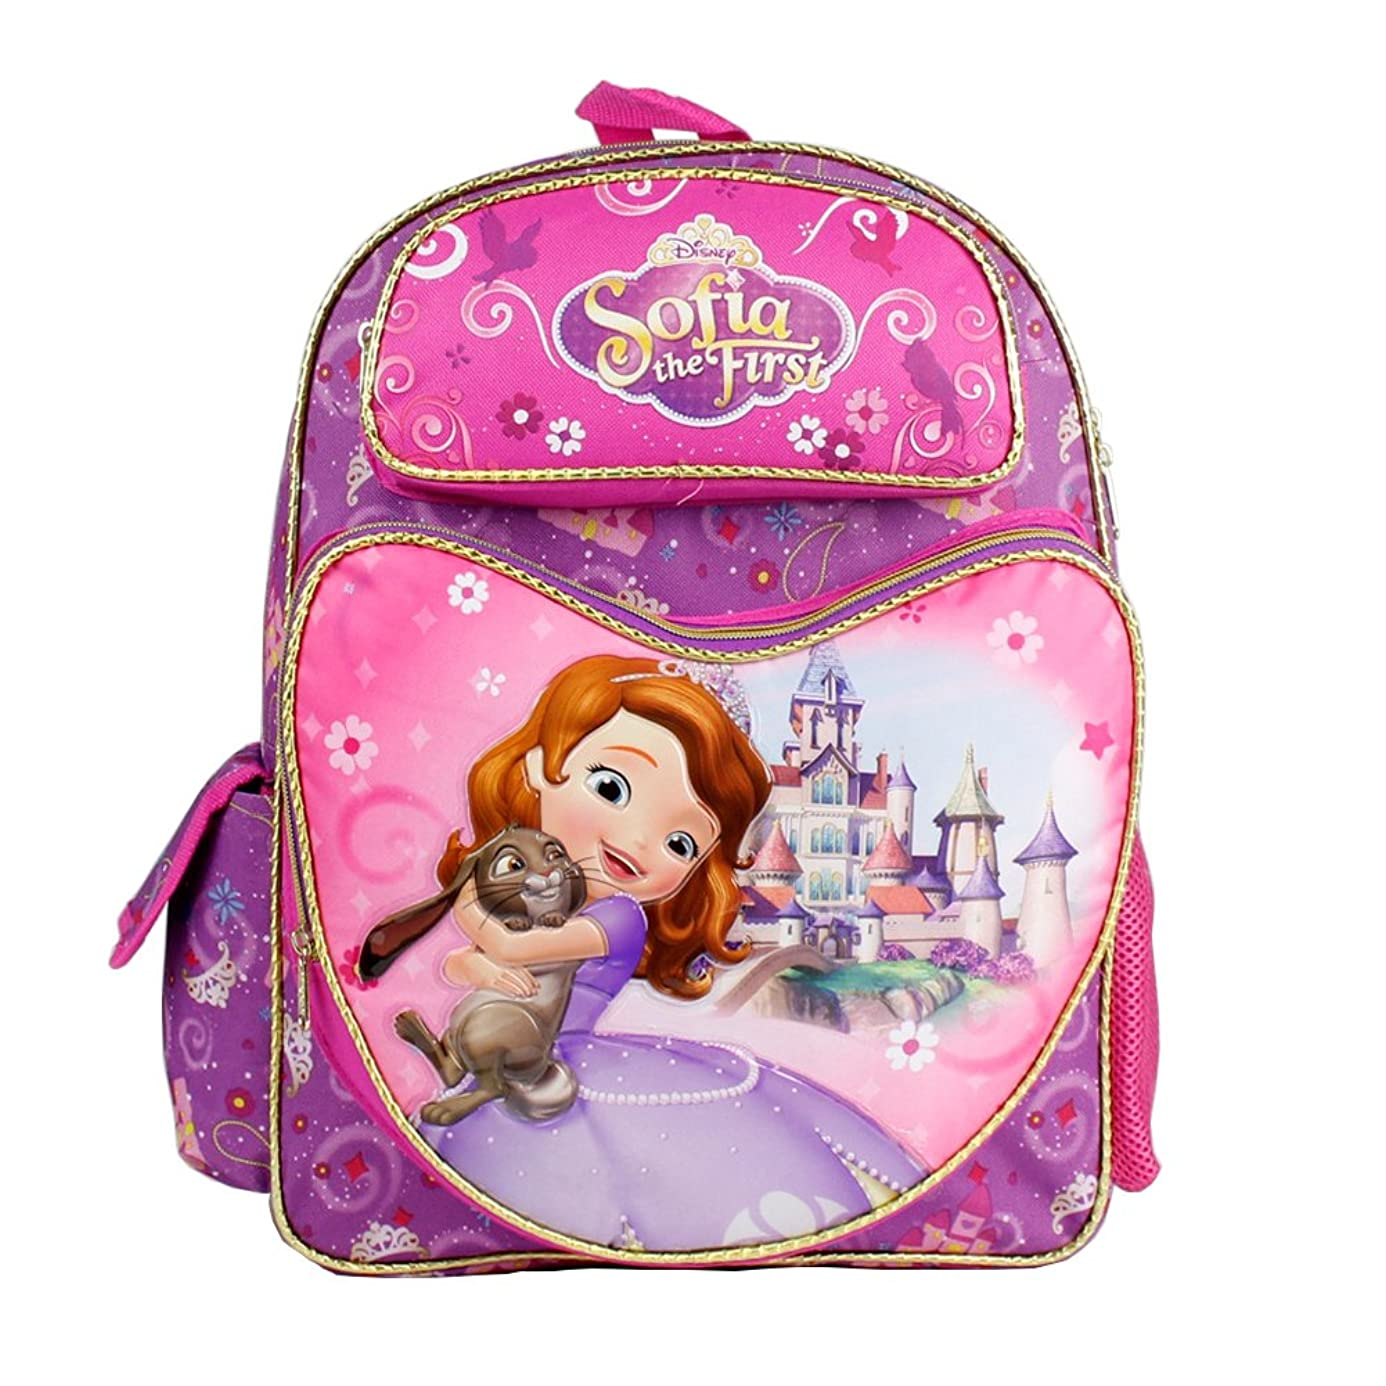 Disney Junior Sofia the First 16' Large Backpack - Princess Bunny Hug bid6968931